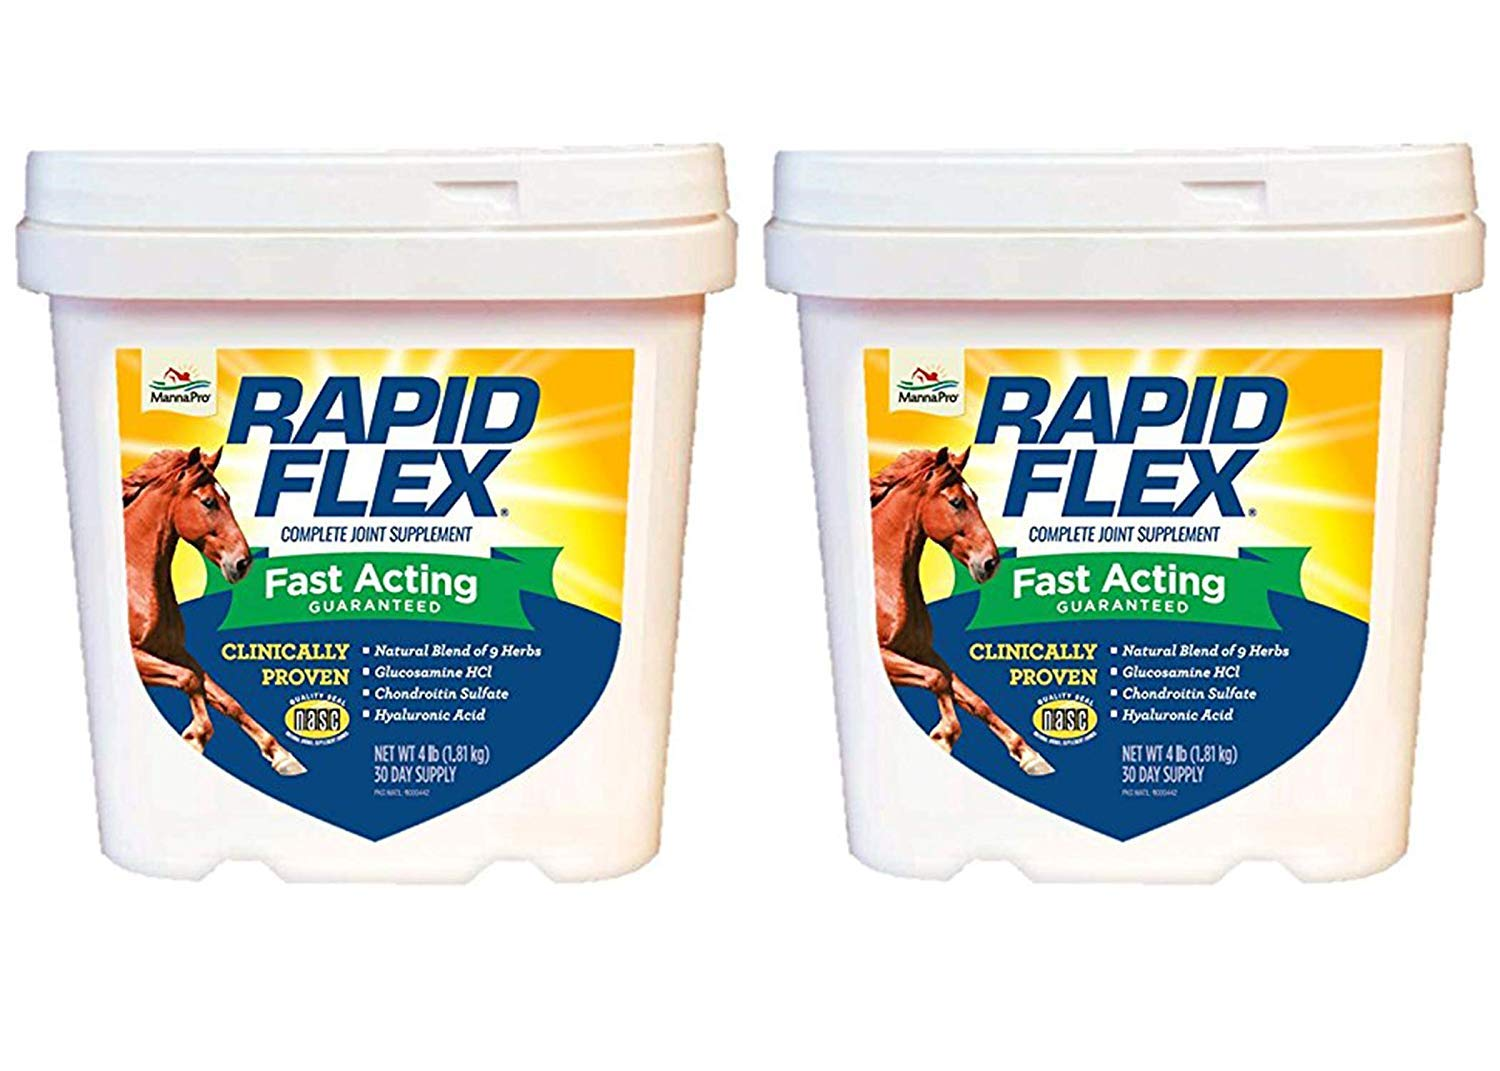 Manna Pro Rapid Flex Supplement for Horses, 4 Pounds (Pack of 2)